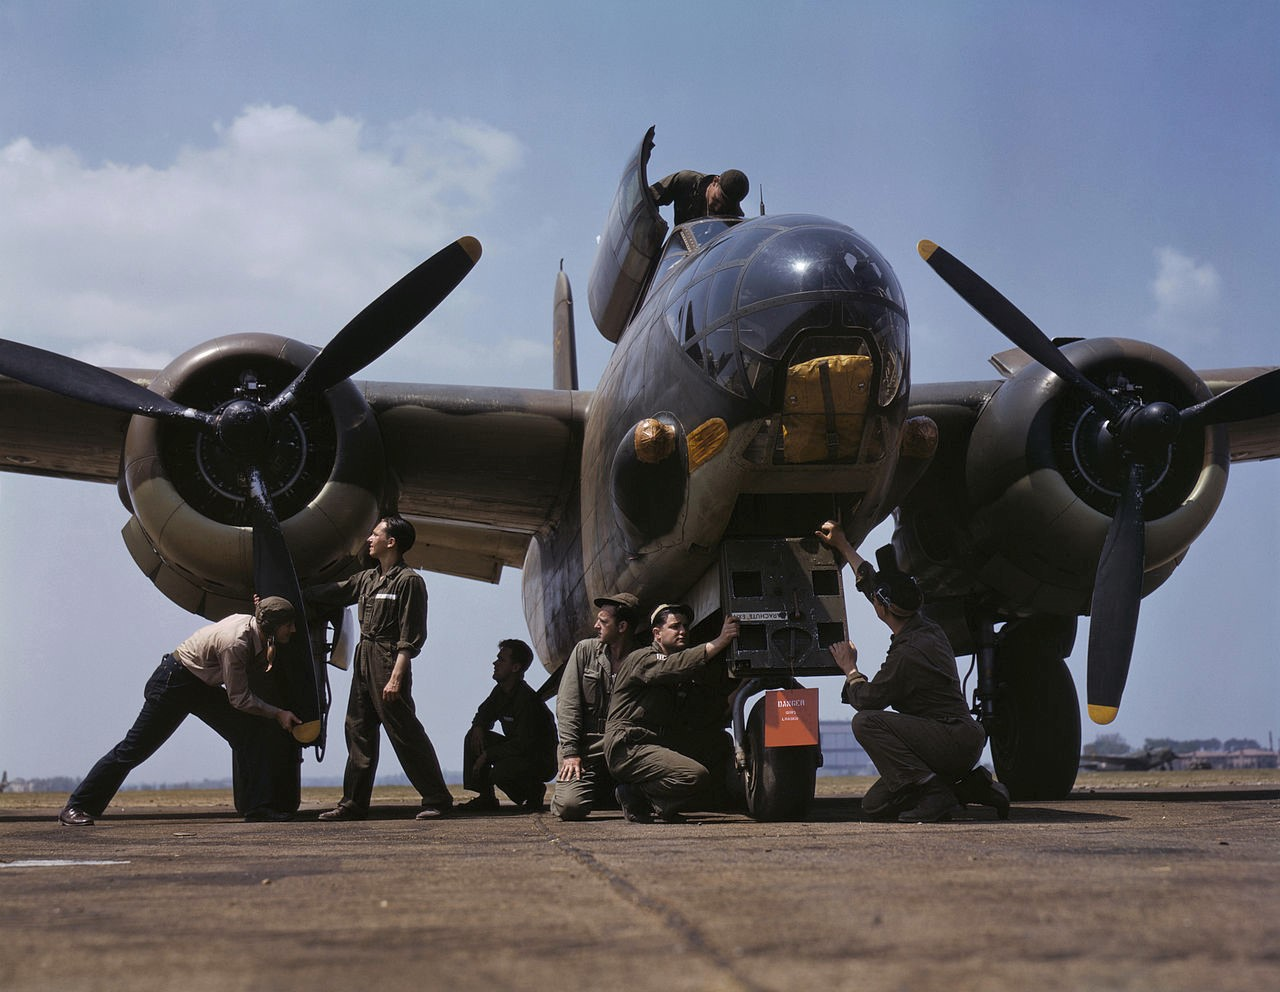 Servicing an A-20 bomber, Langley Field, Va